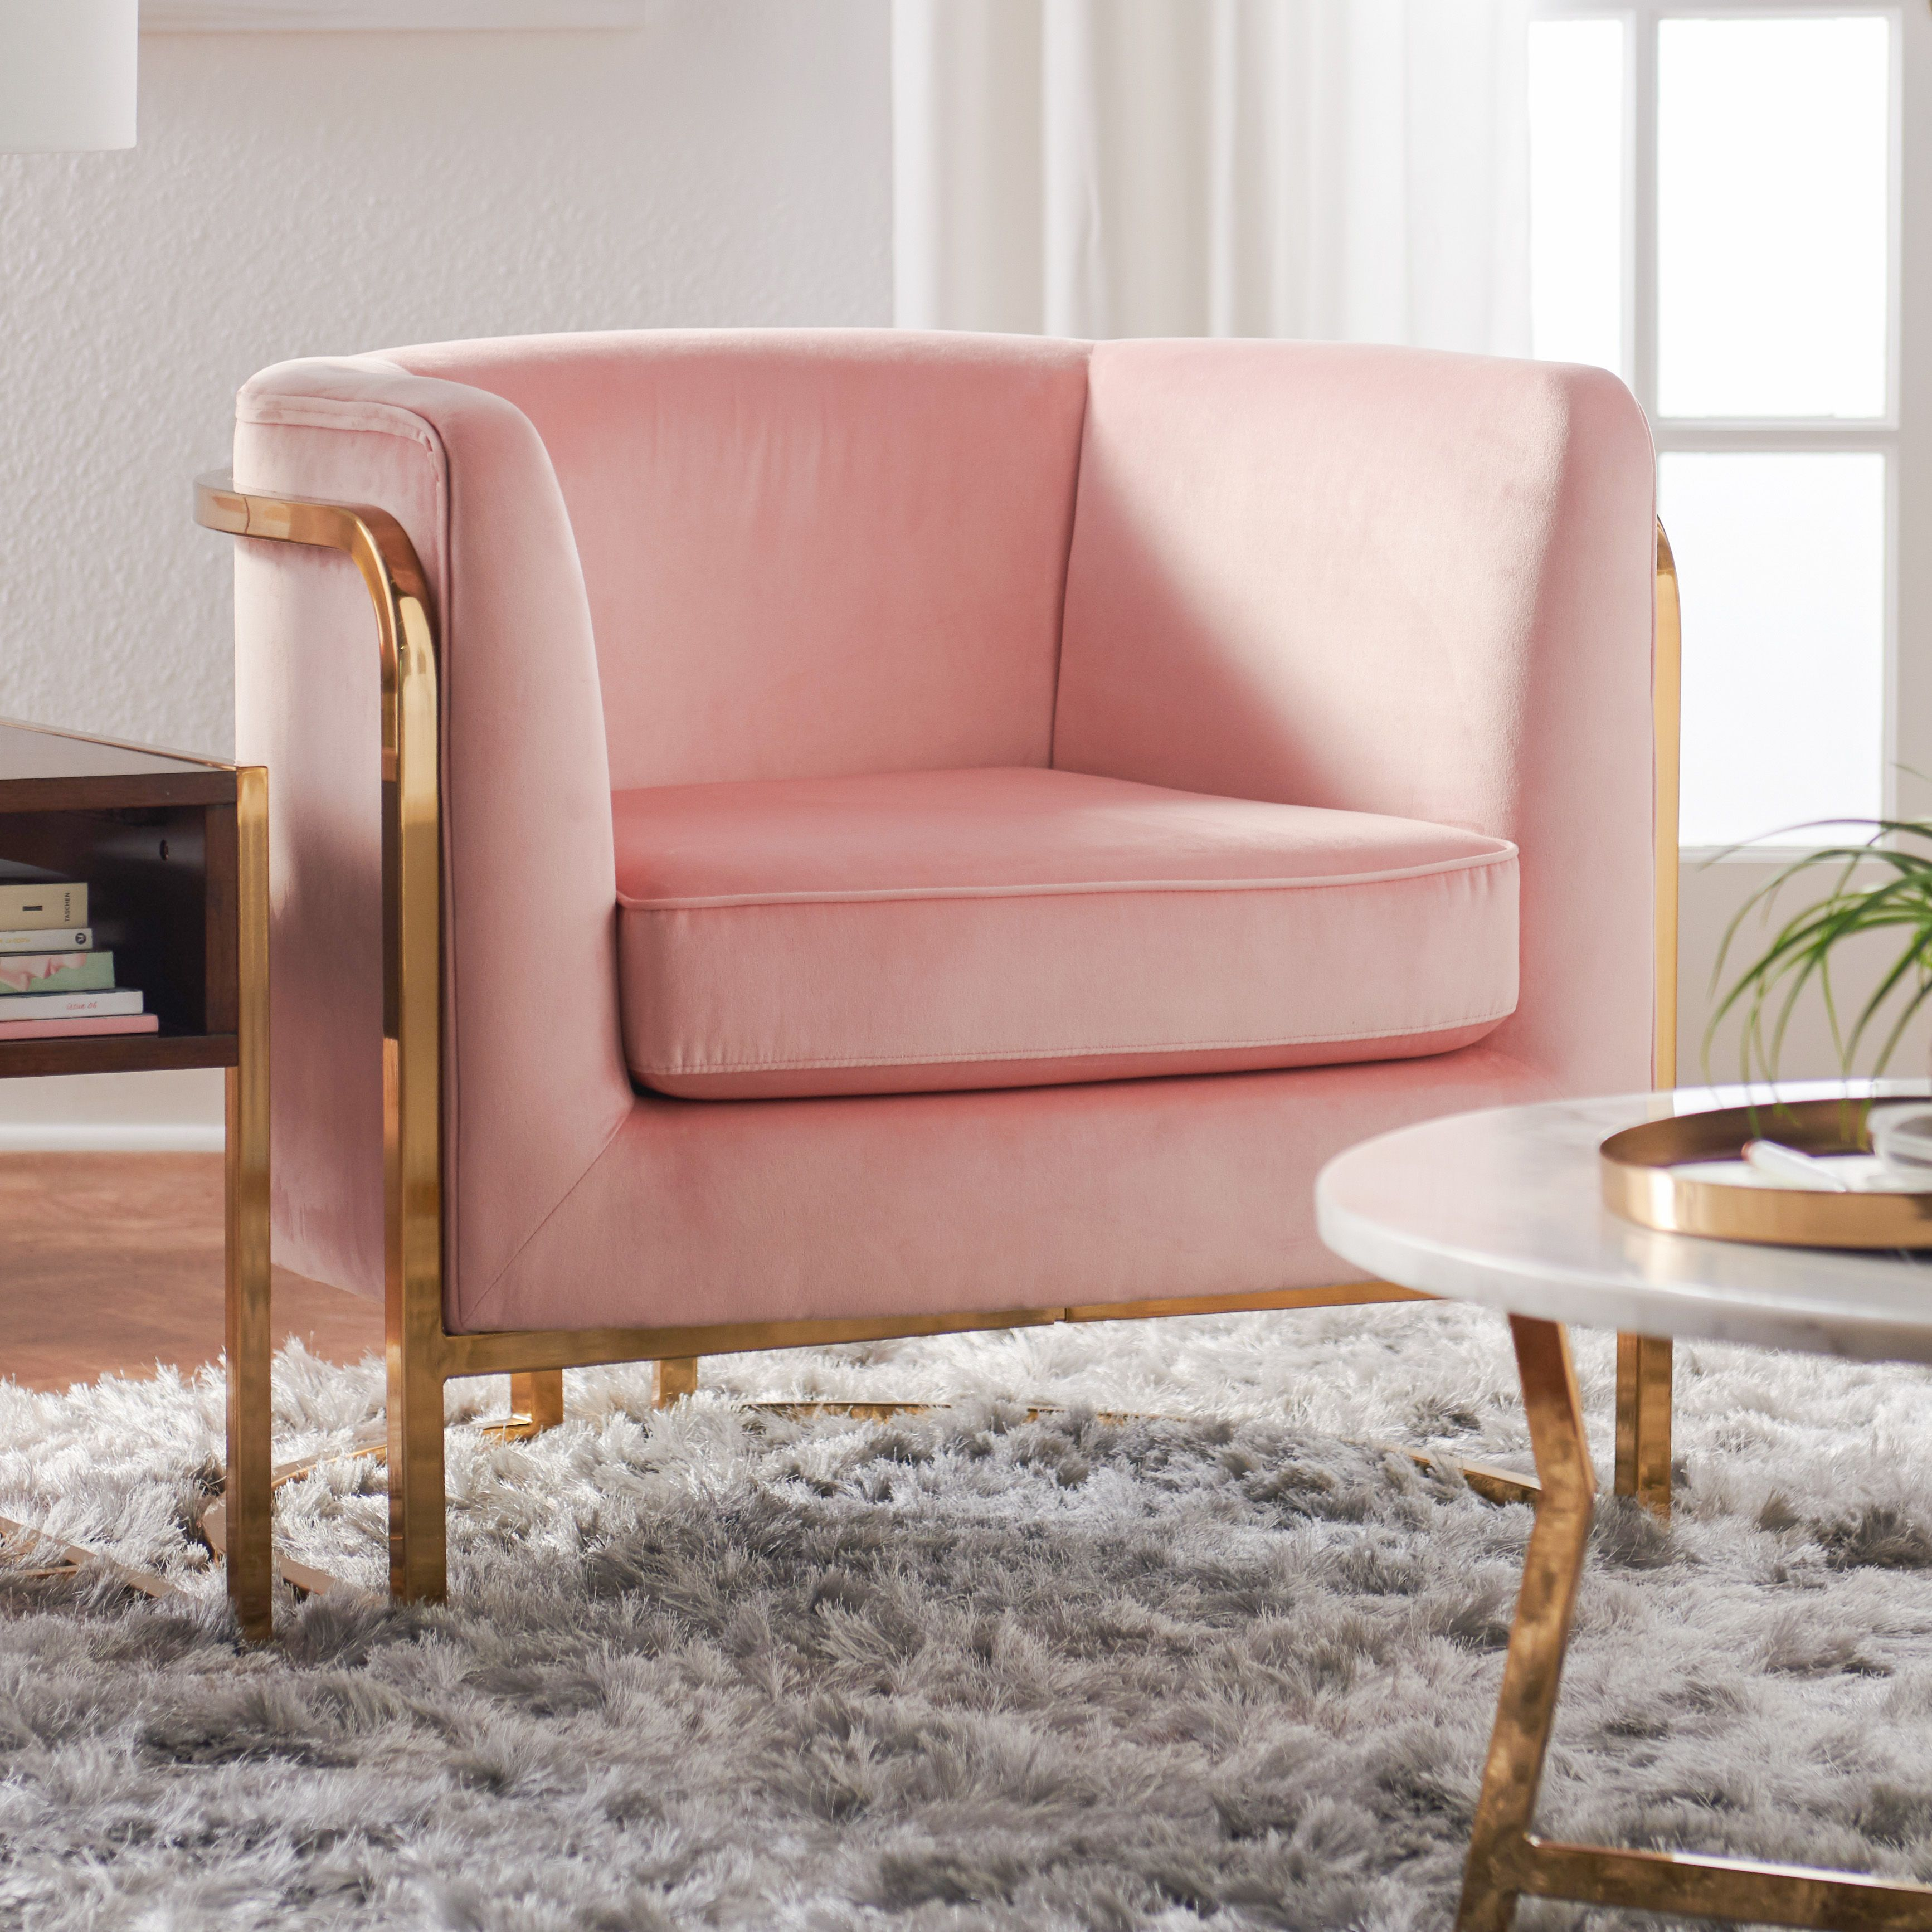 Sofa Accessories Online India 16 Best Online Furniture Stores Best Websites For Buying Furniture